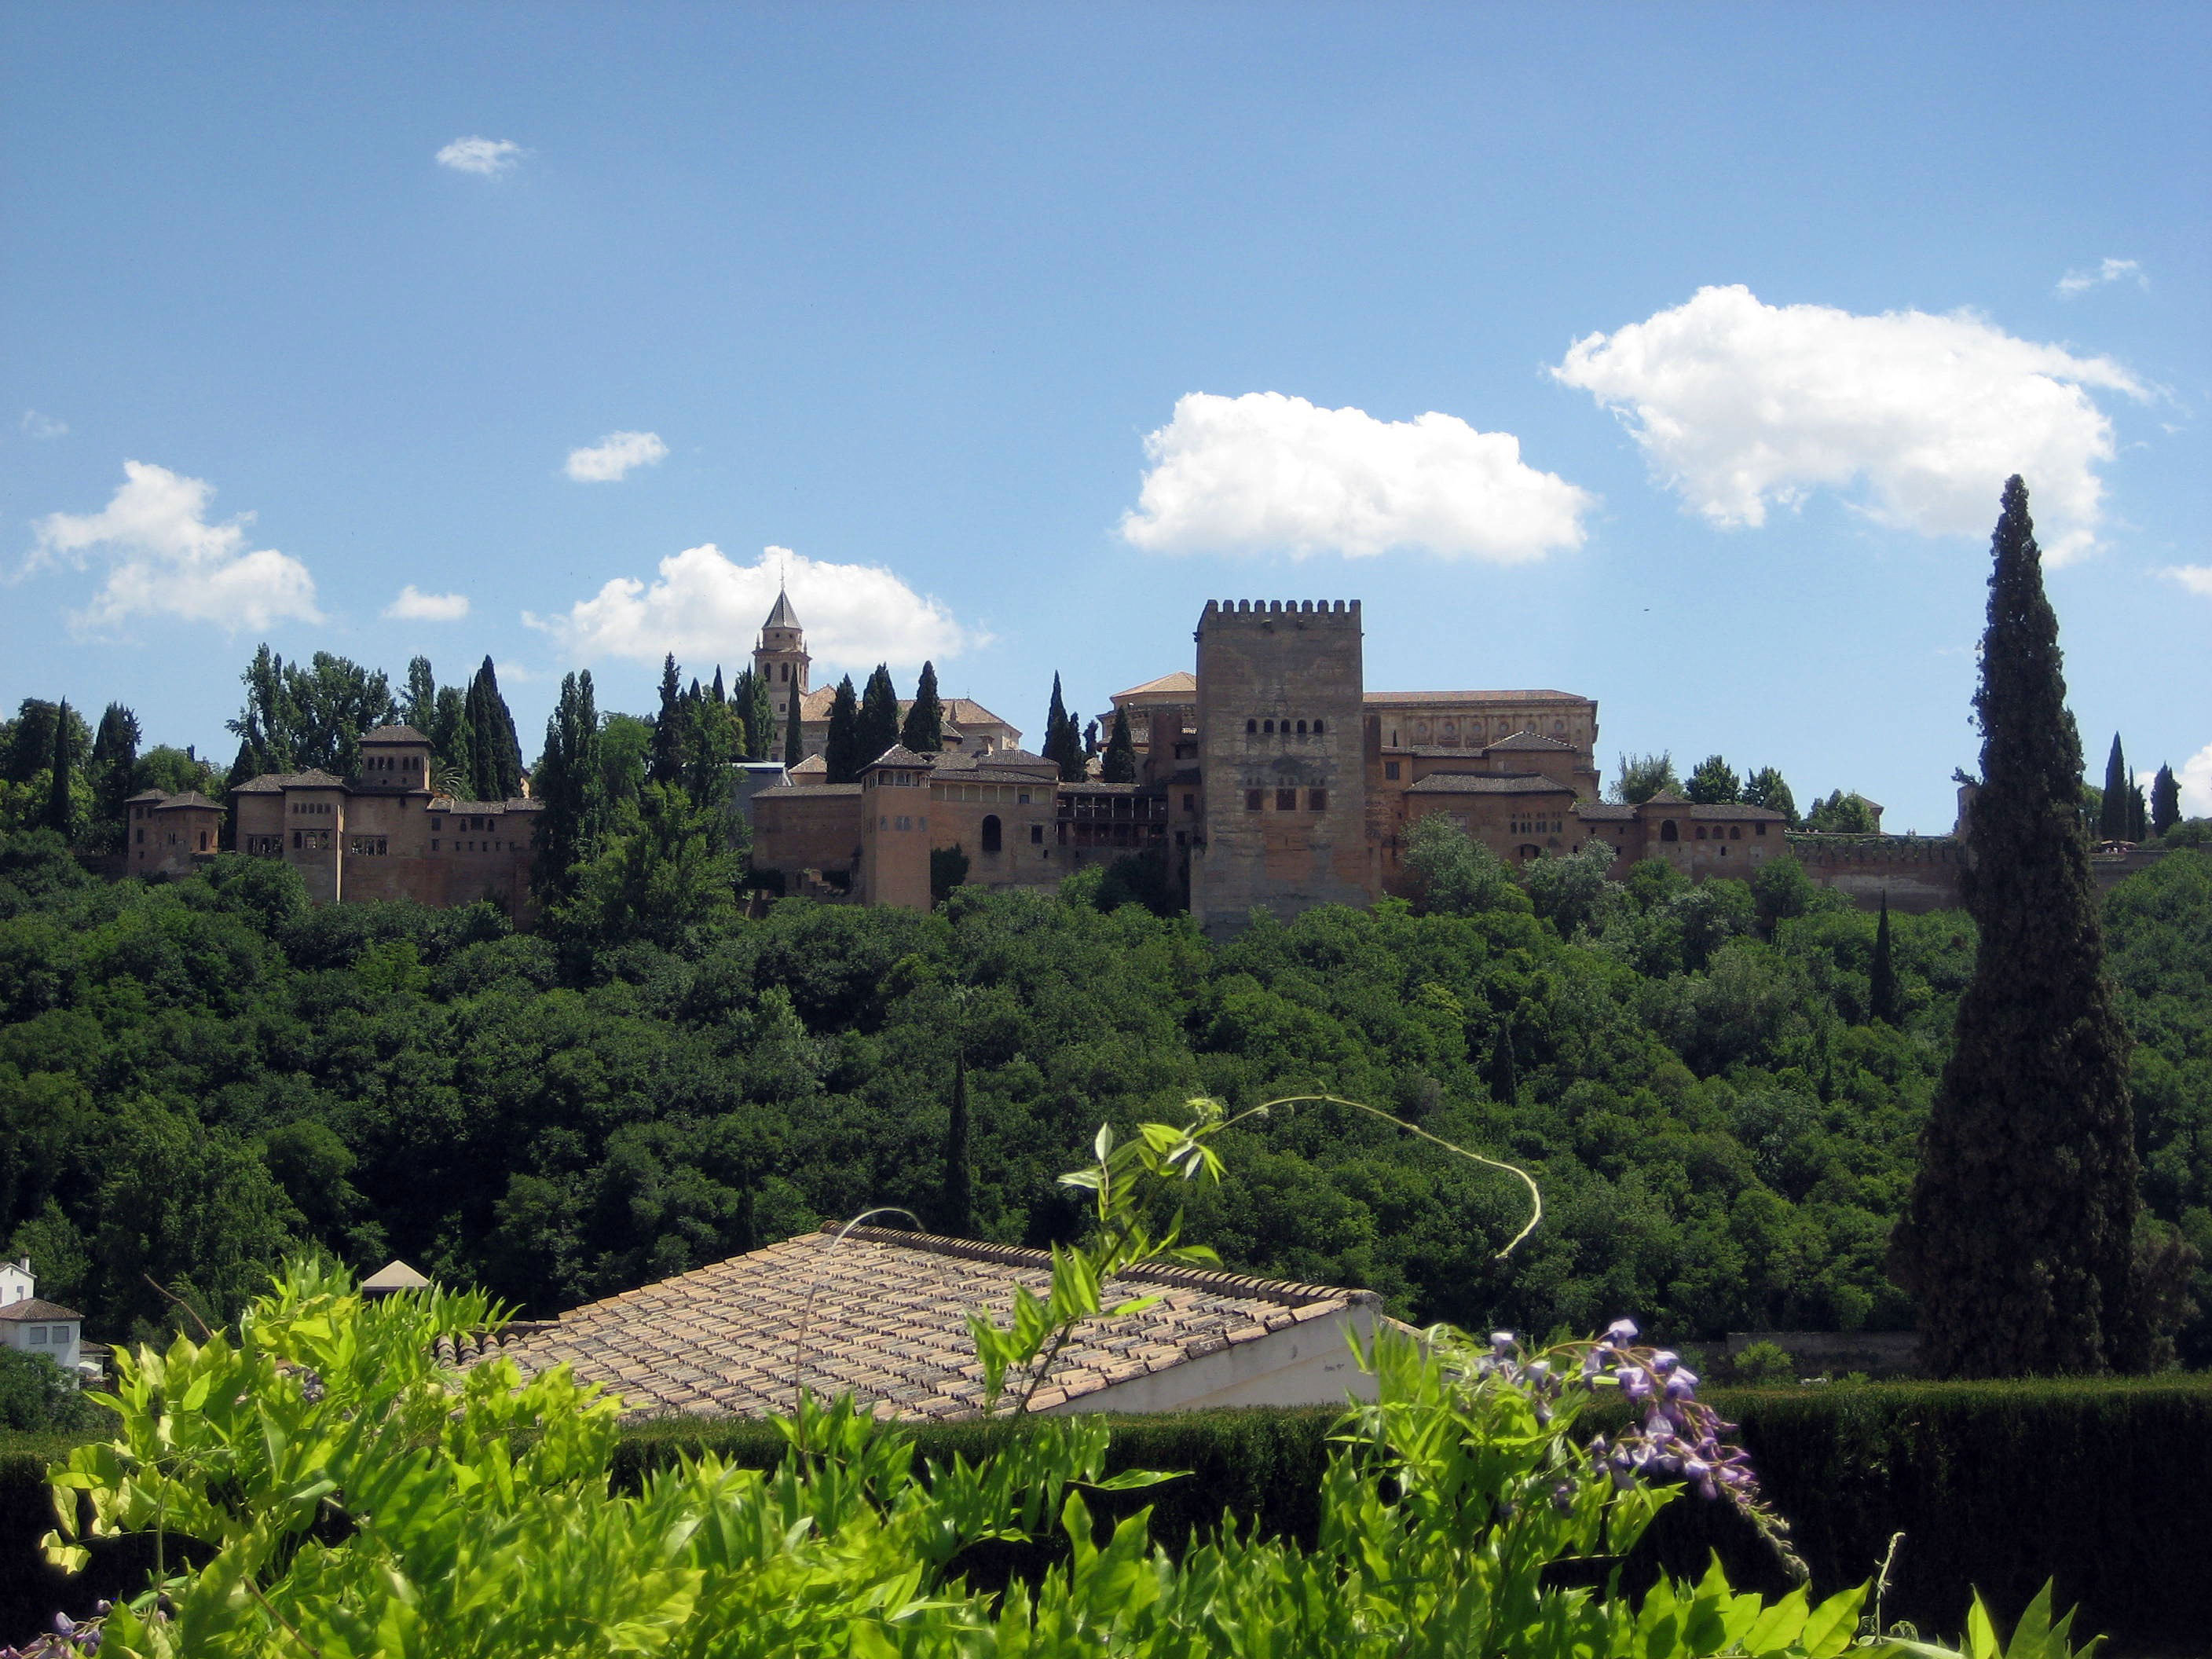 Spain has great architecture that is a must-see for tourists. (credit: Courtesy of Eda Akyar)